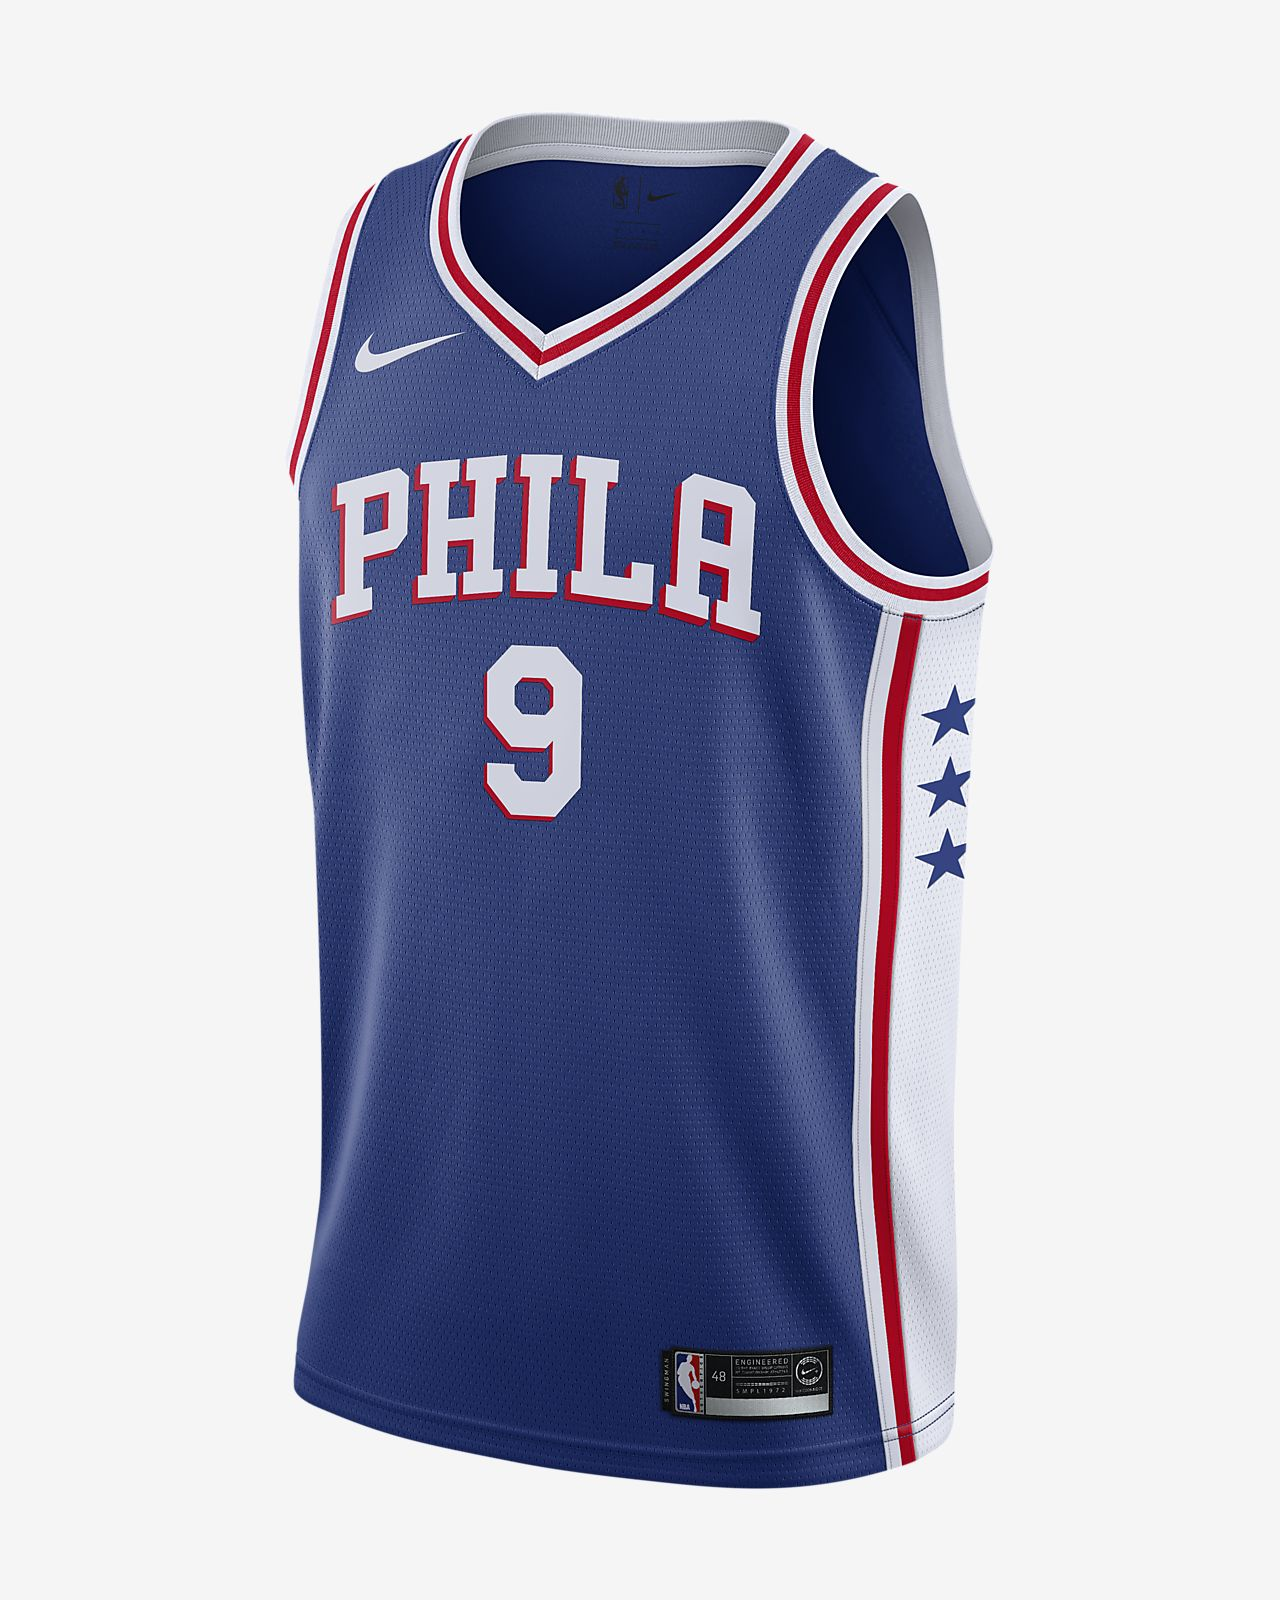 Męska koszulka Nike NBA Connected Jersey Dario Šaric Icon Edition Swingman (Philadelphia 76ers)